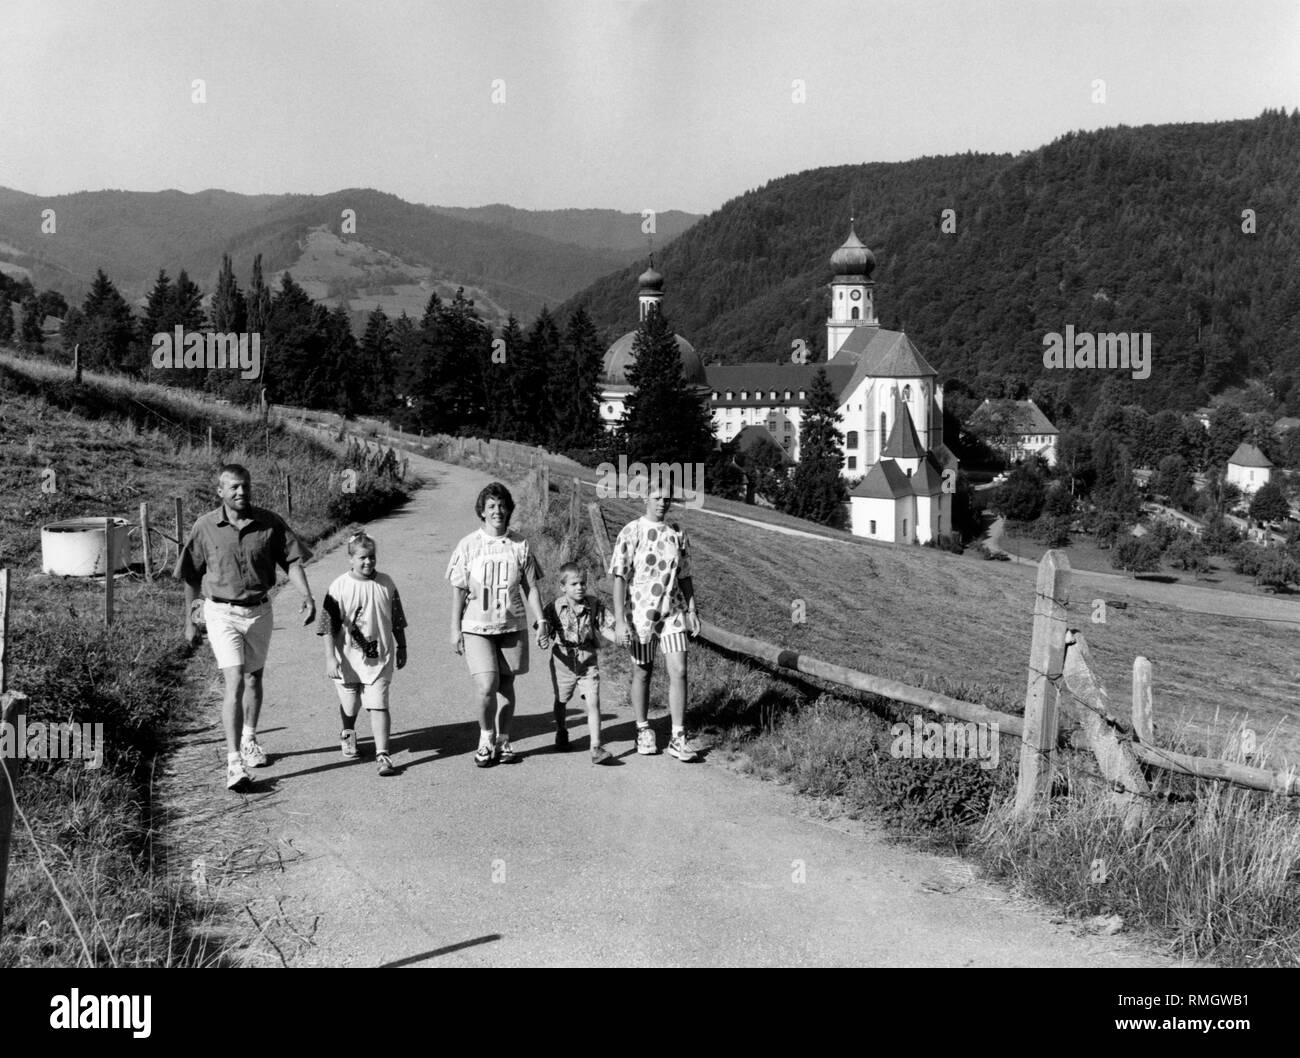 A family on a trail in the region between Belchen and Schauinsland in the Black Forest. In the background thie church of Münstertal. Undated picture. - Stock Image